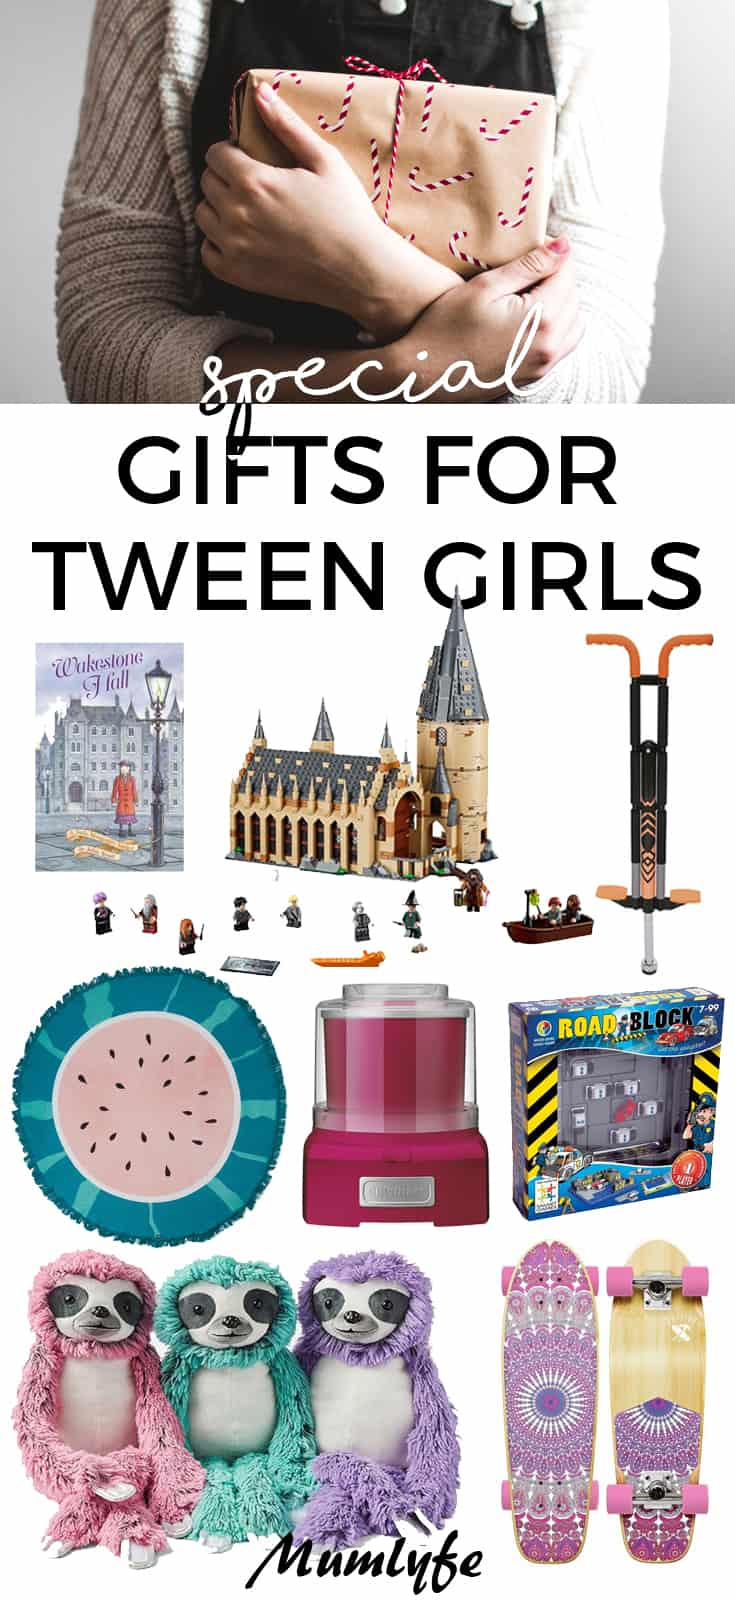 Special gift ideas for tween girls - best gift list for Christmas